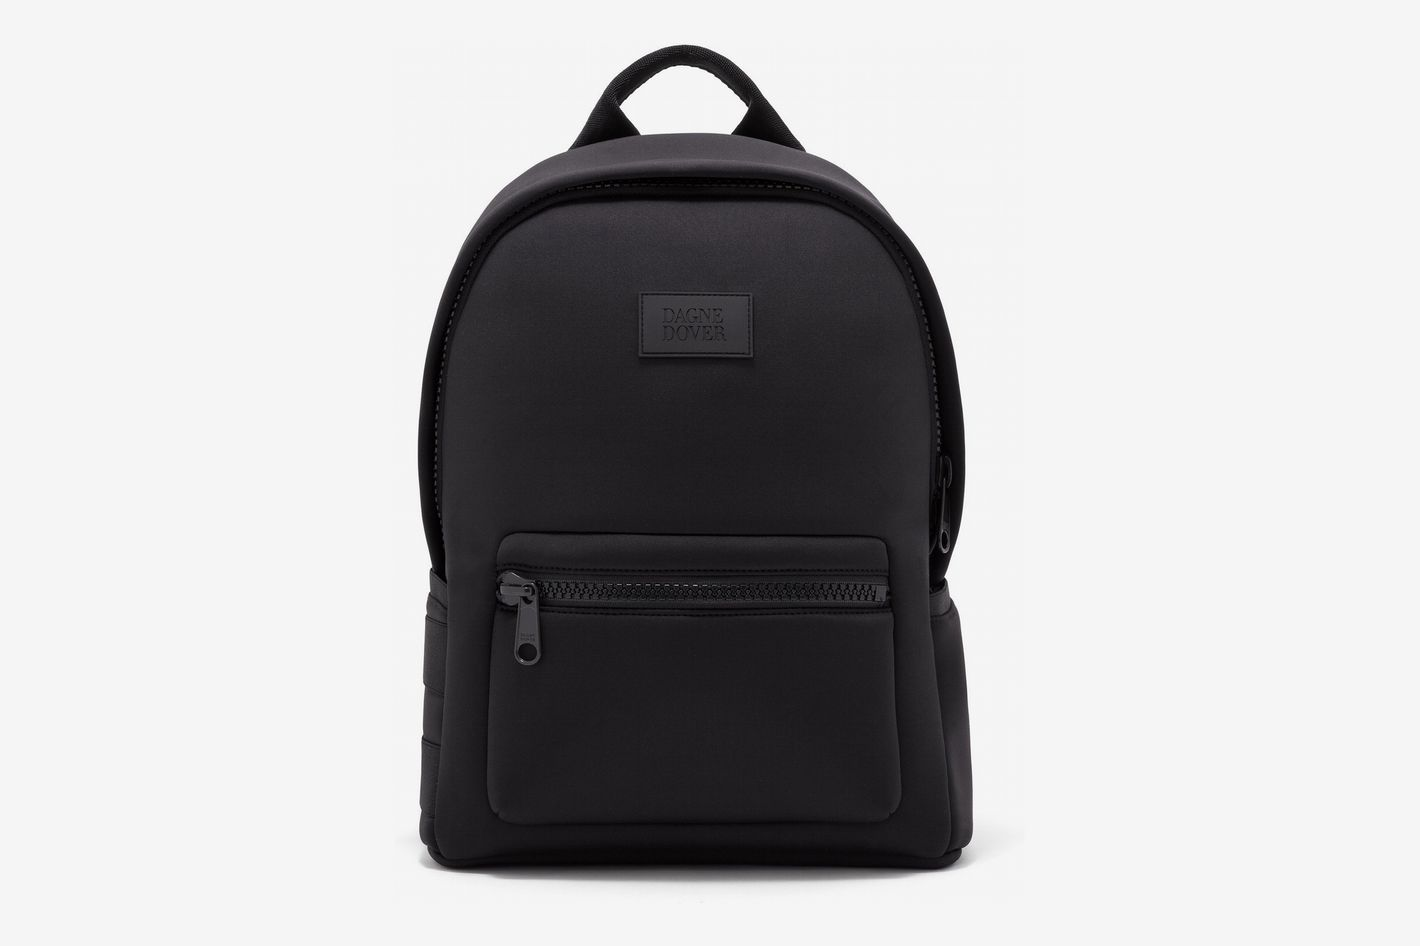 287d668d5bcb 15 Best Work Backpacks Under $500: 2018